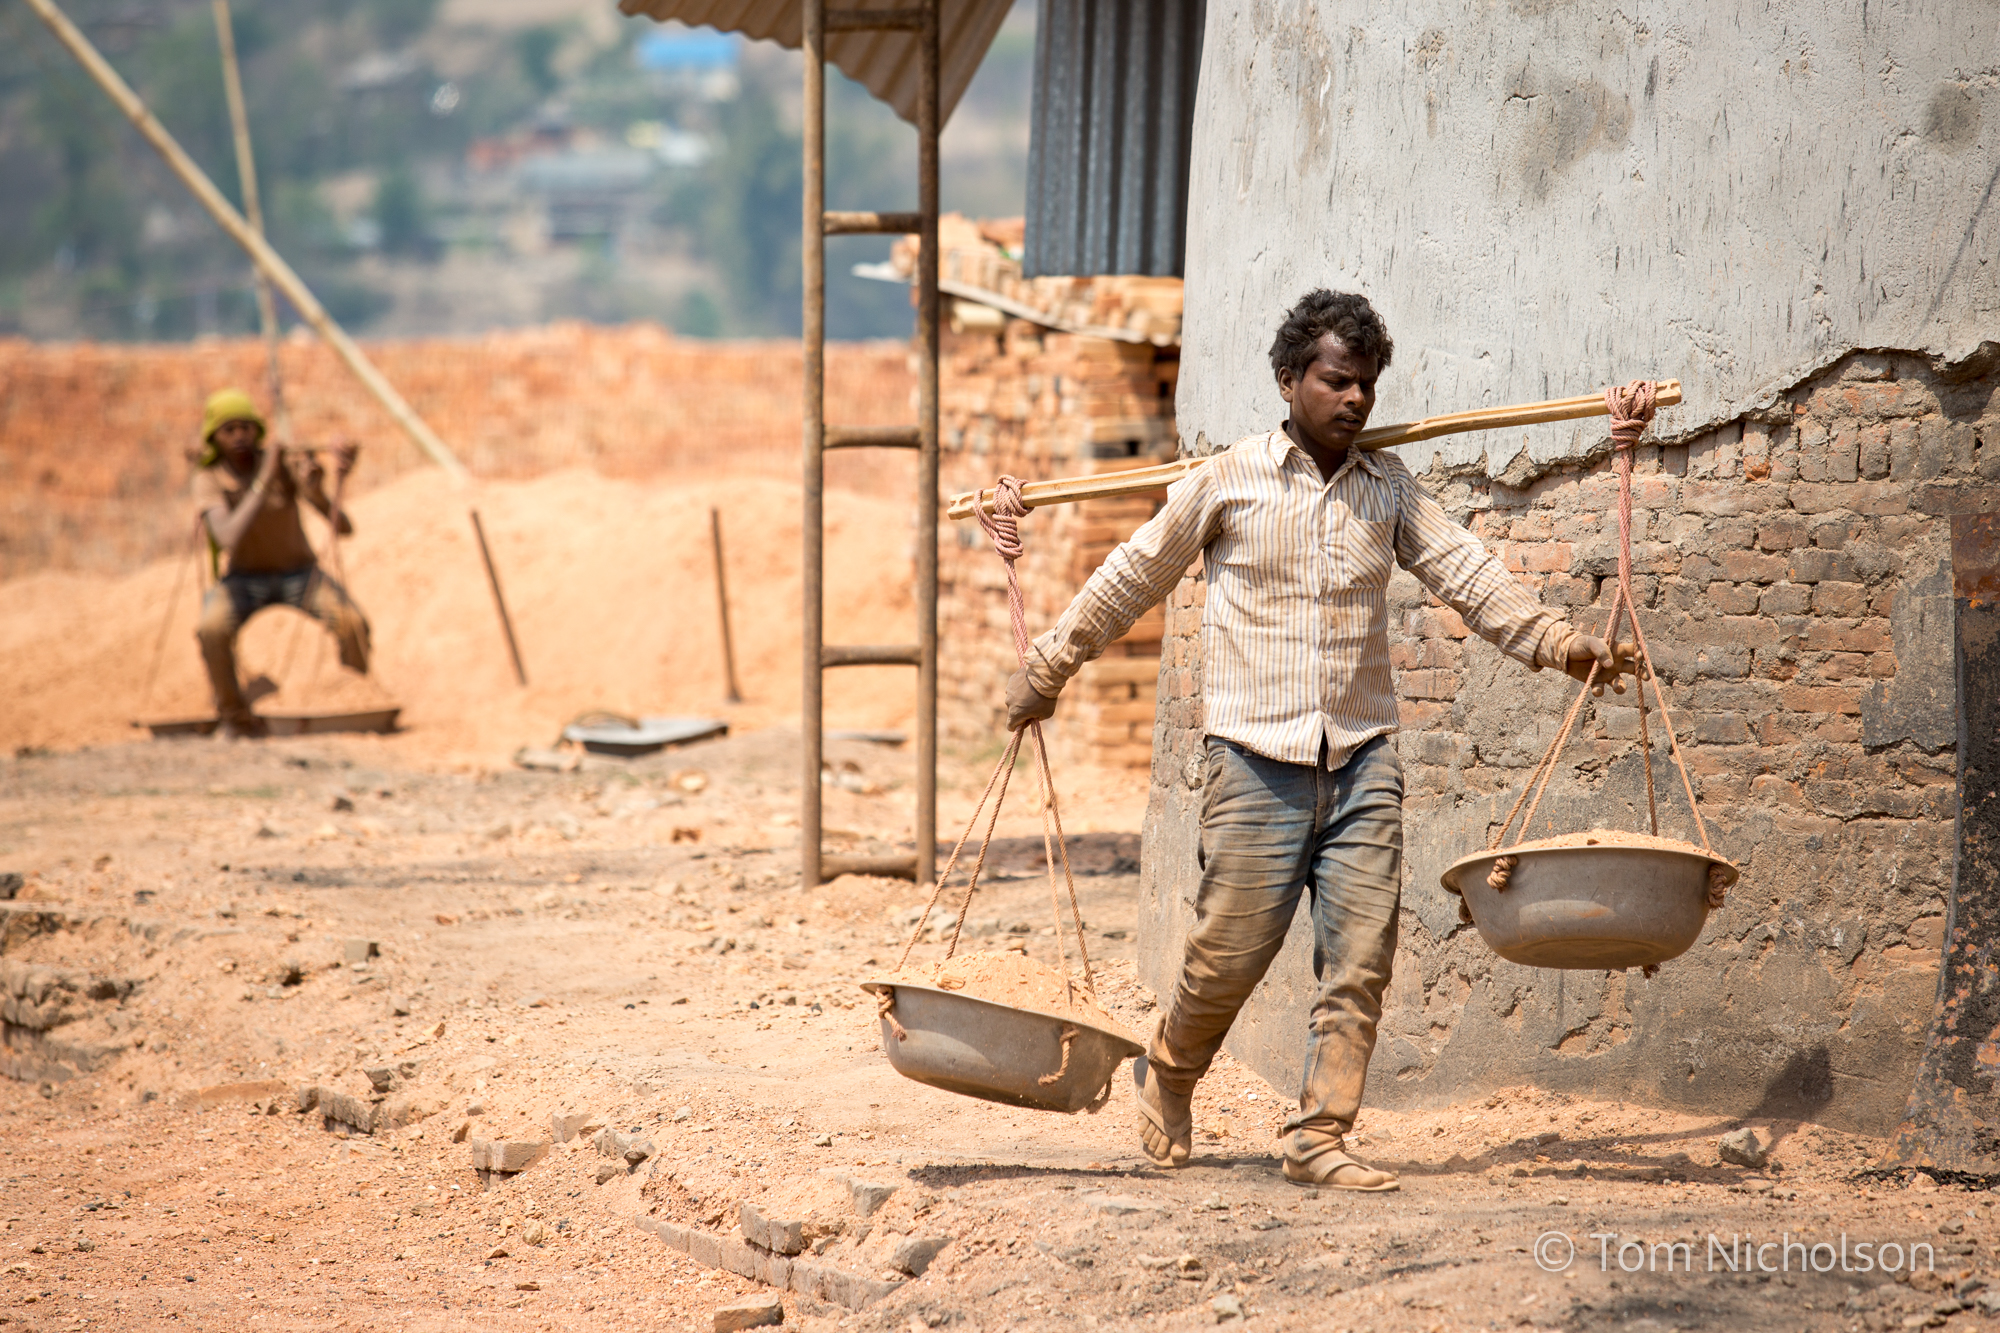 Labourers carry sand in the UK brickworks factory in Bungamati, Kathmandu, Nepal on 15 March 2016. Around 400 labourers, including children, work in very dusty and hot conditions.